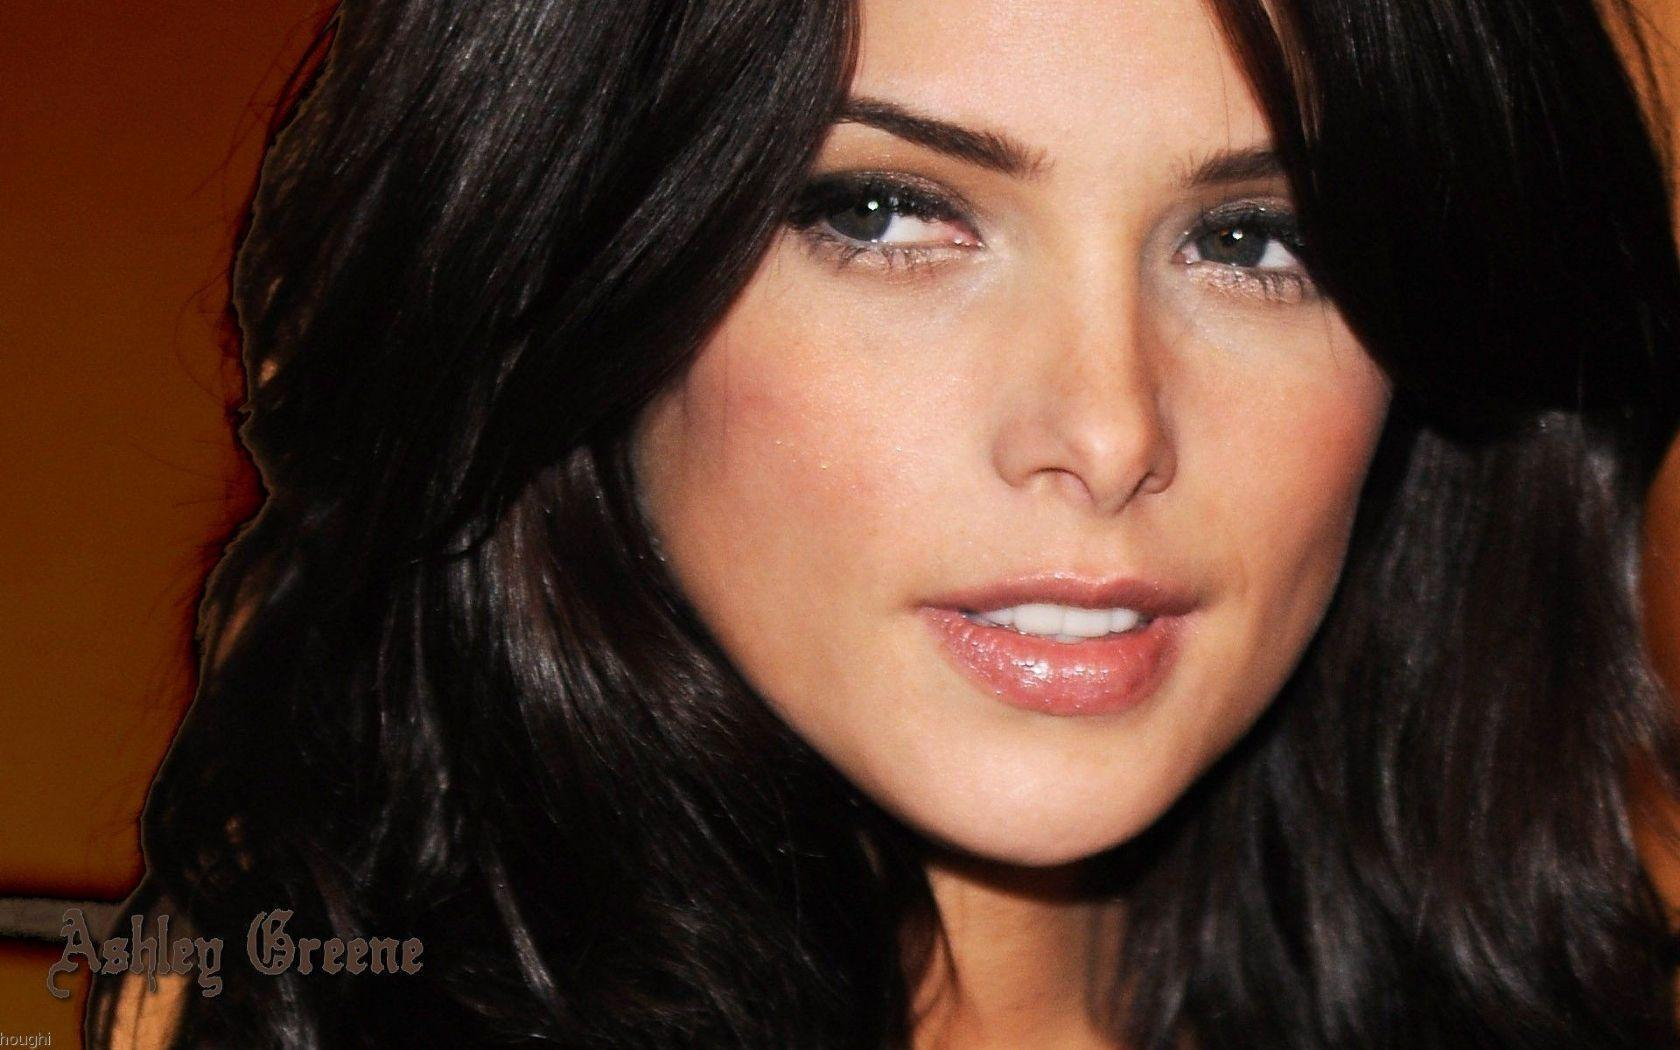 Fotos atractivas ashley greene